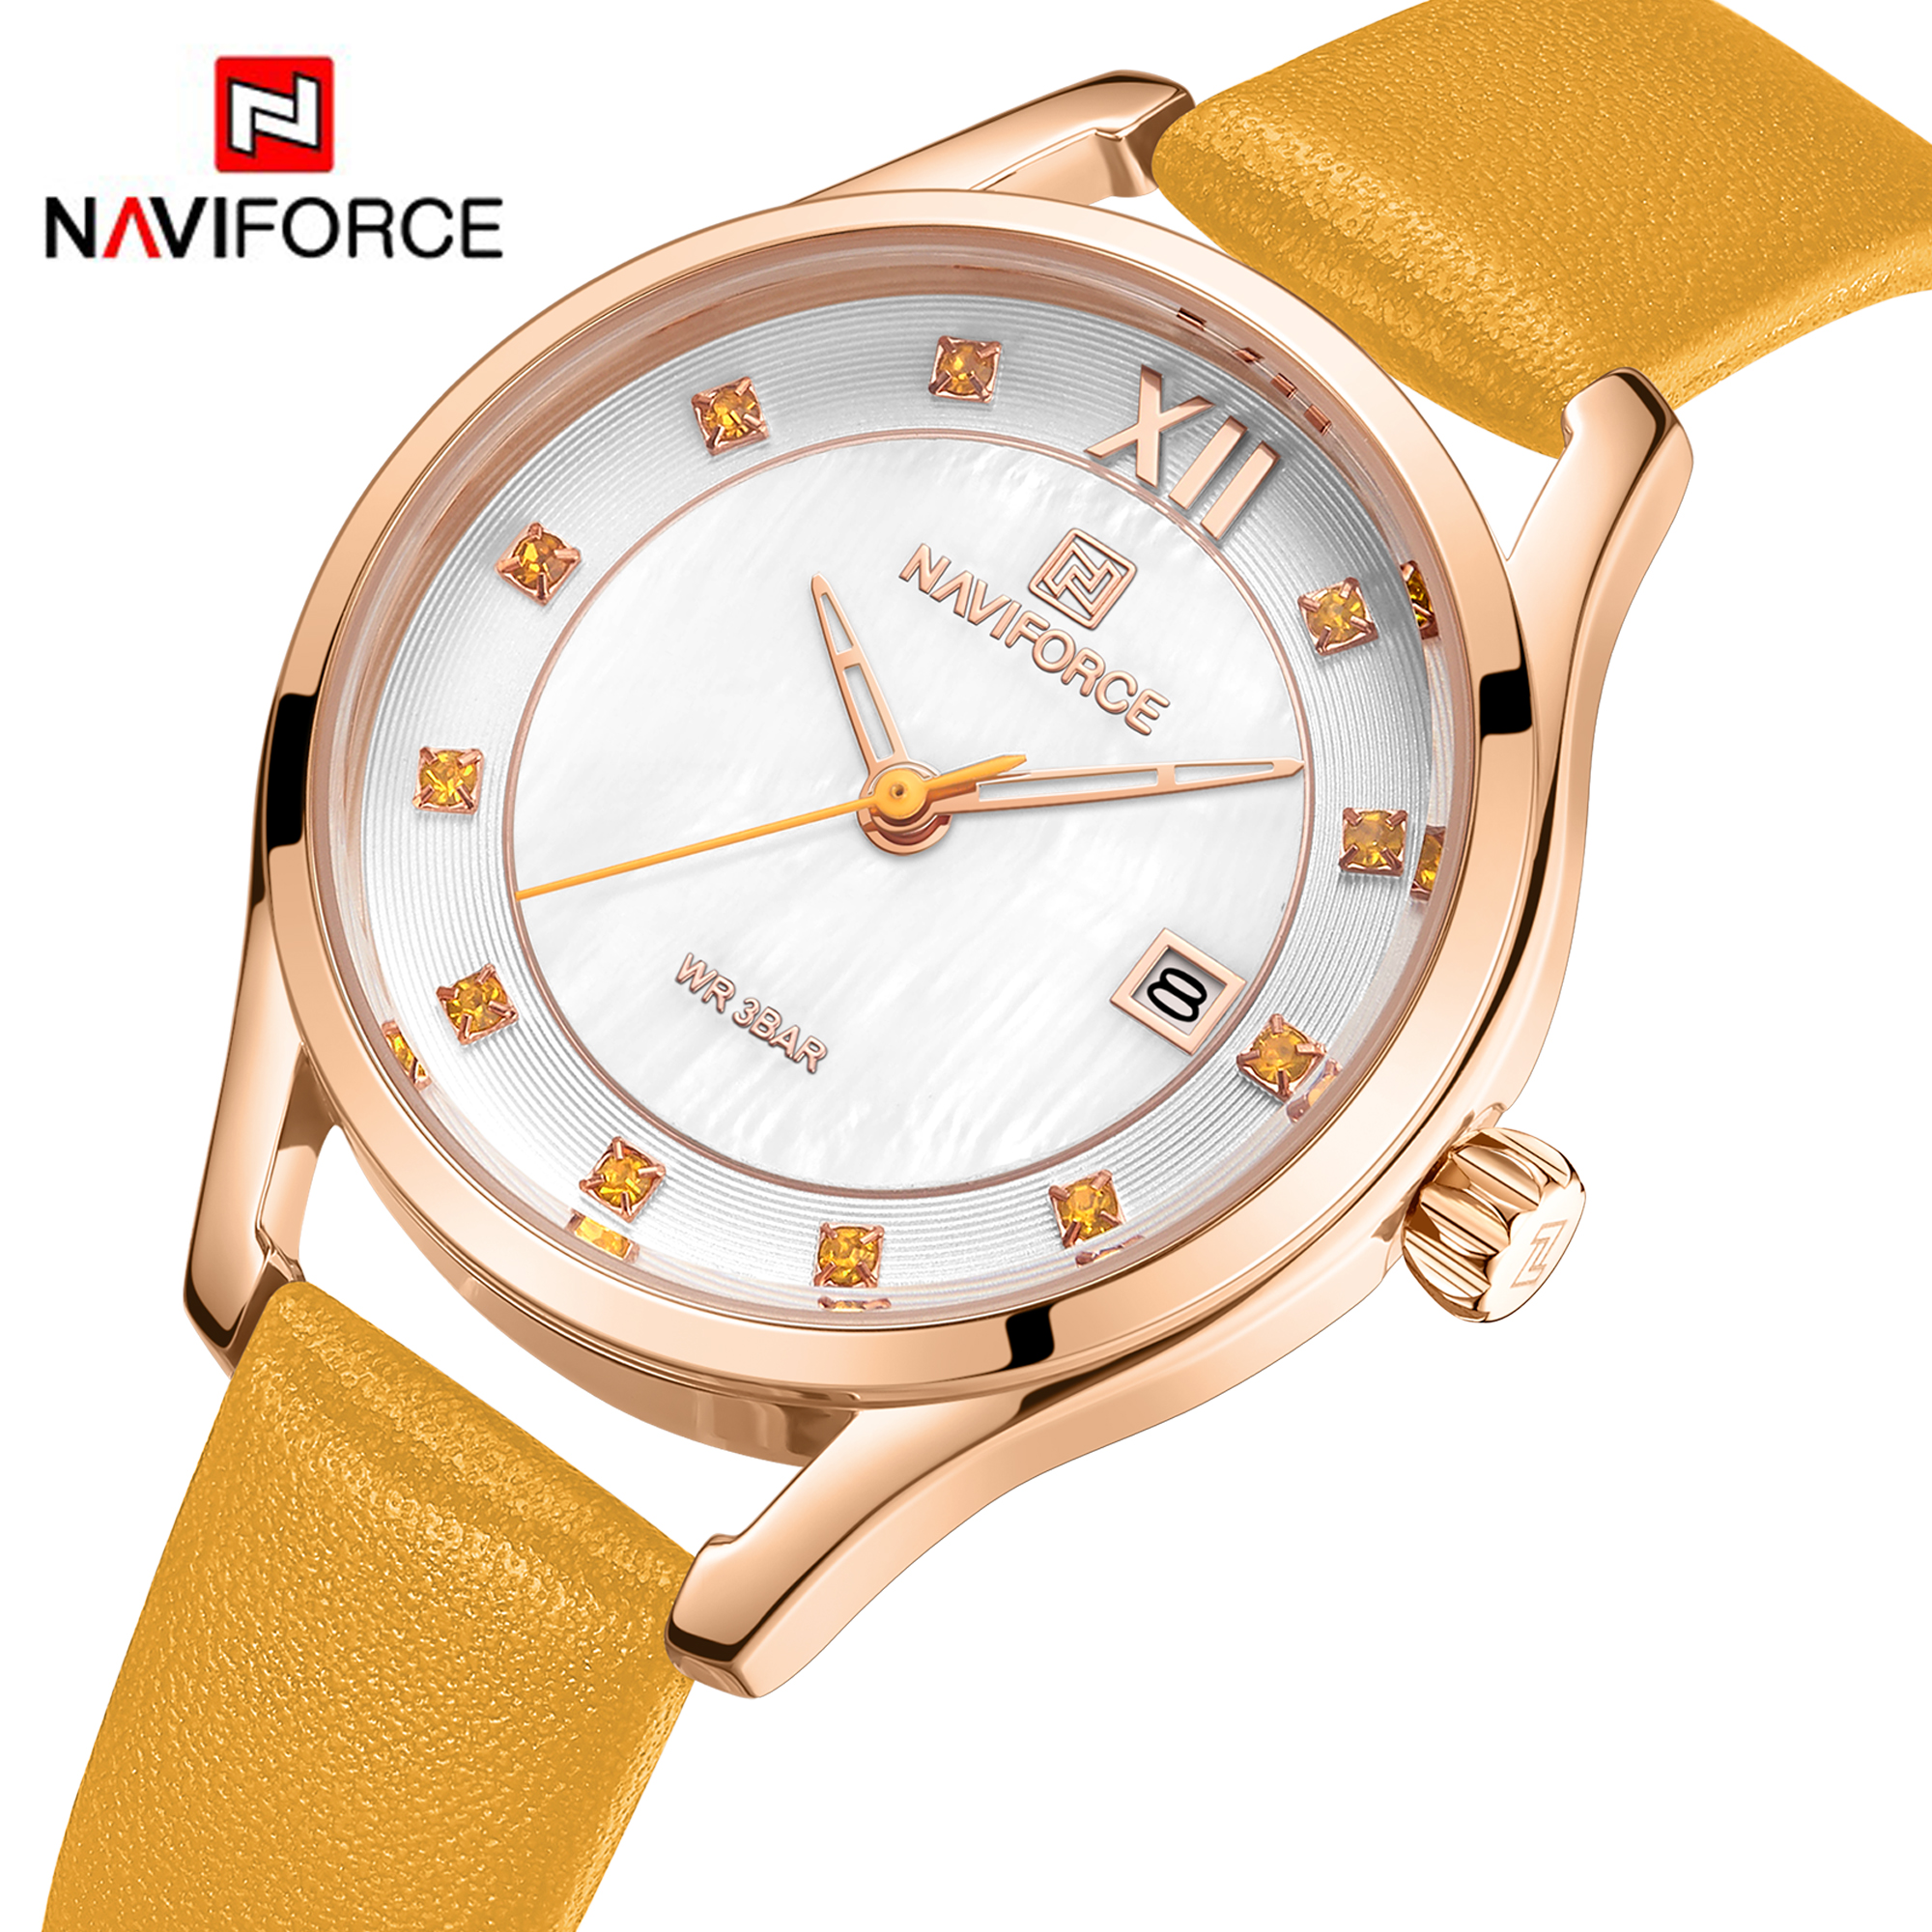 NAVIFORCE Women Watches Top Brand Fashion Luxury Quartz Watch Waterproof Wristwatch Ladies Simple Girls Clock Gift Reloj Mujer